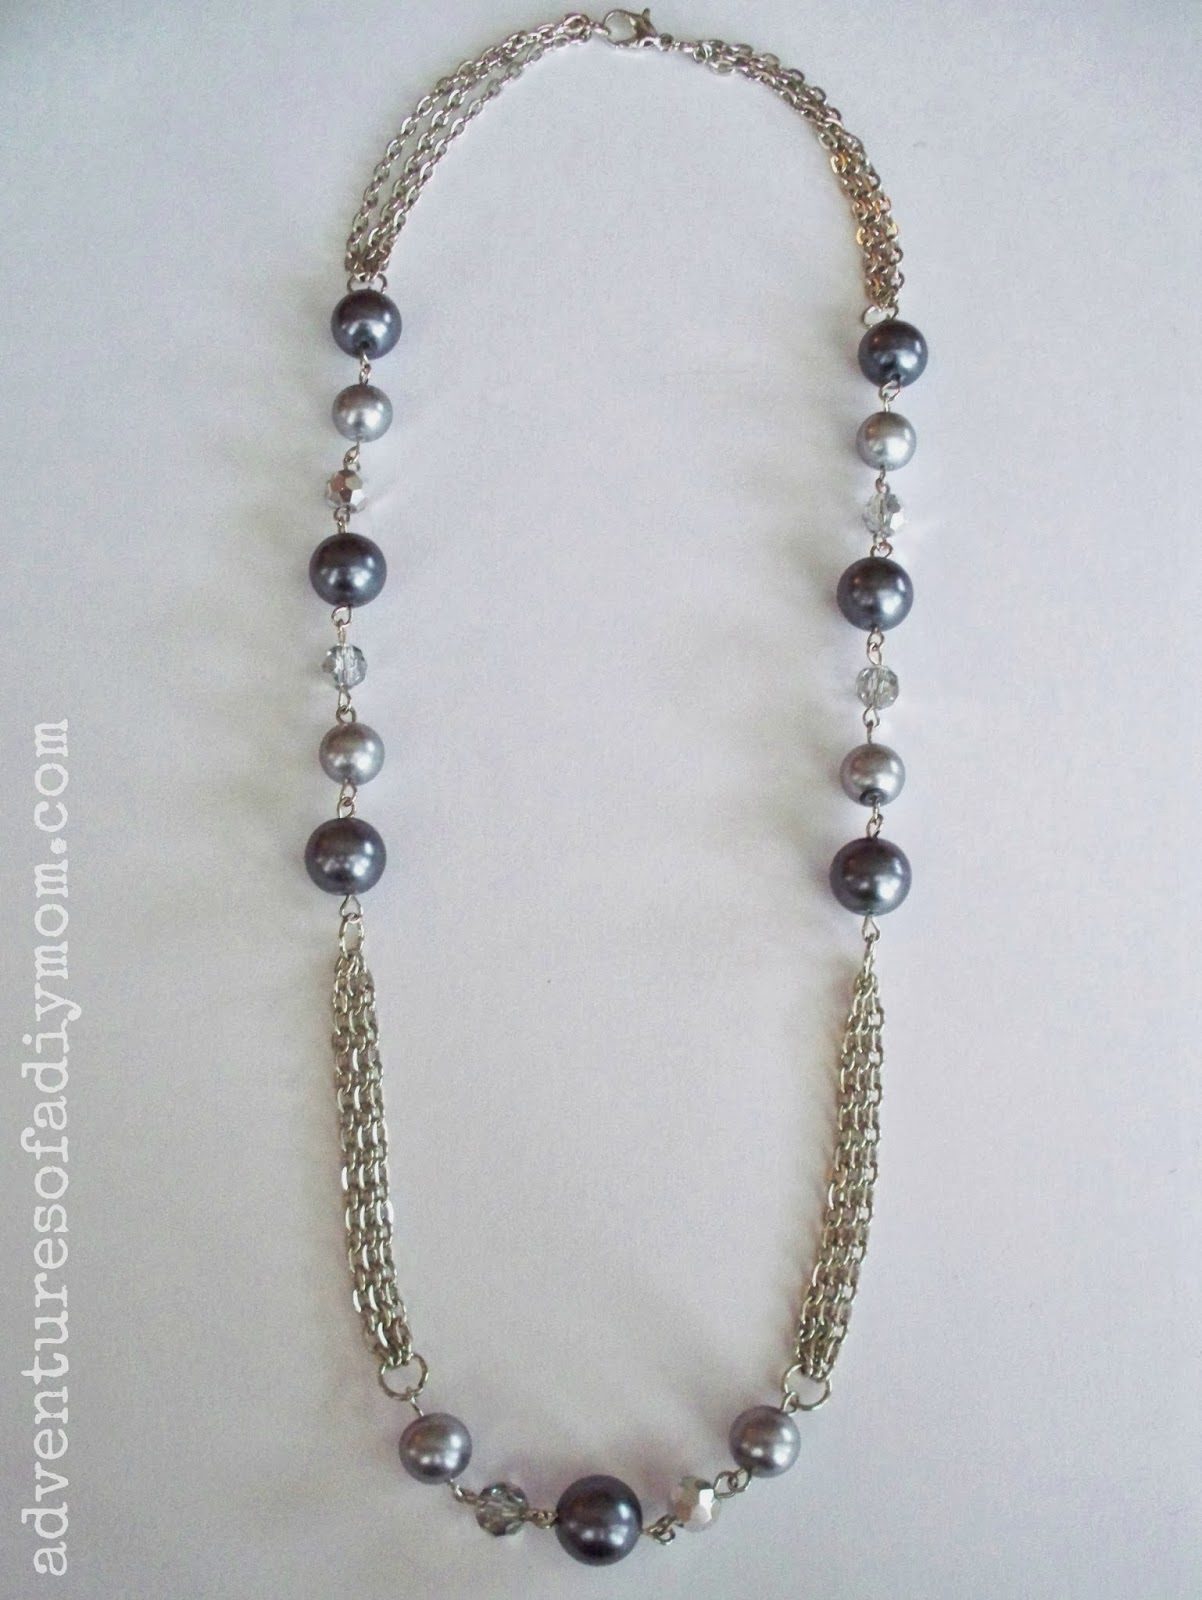 How to Make a Chain and Bead Necklace - Adventures of a DIY Mom